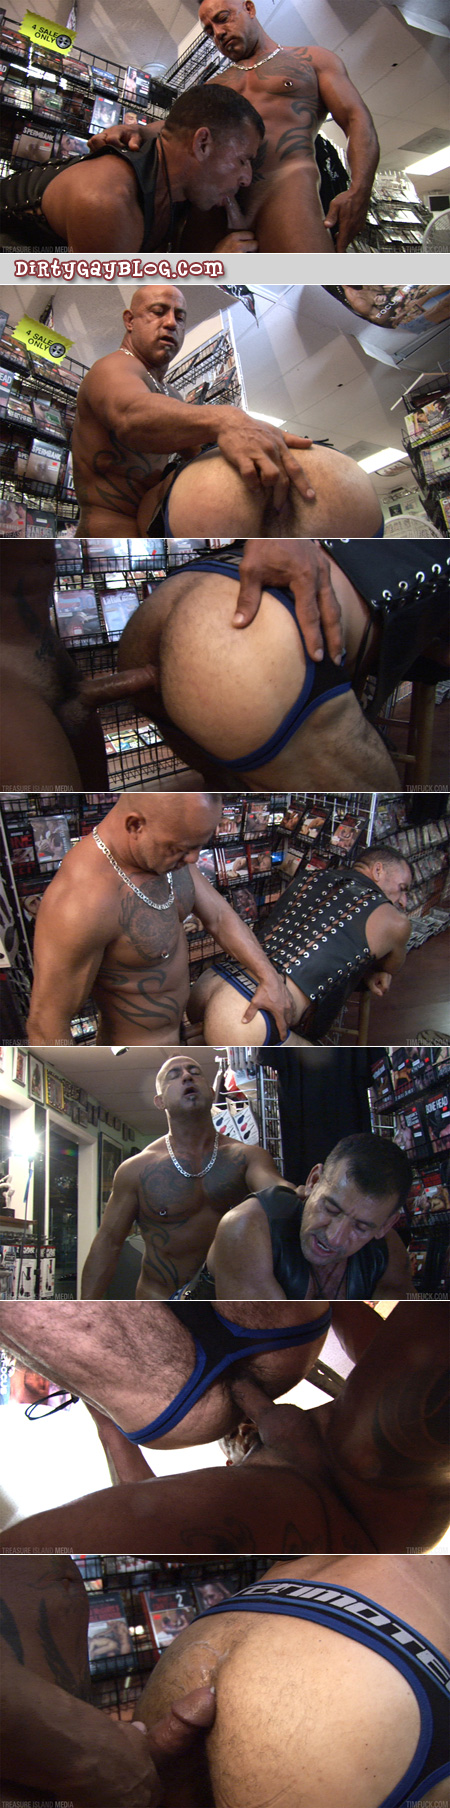 Hairy daddies fuck bareback in the aisle of an adult video store.